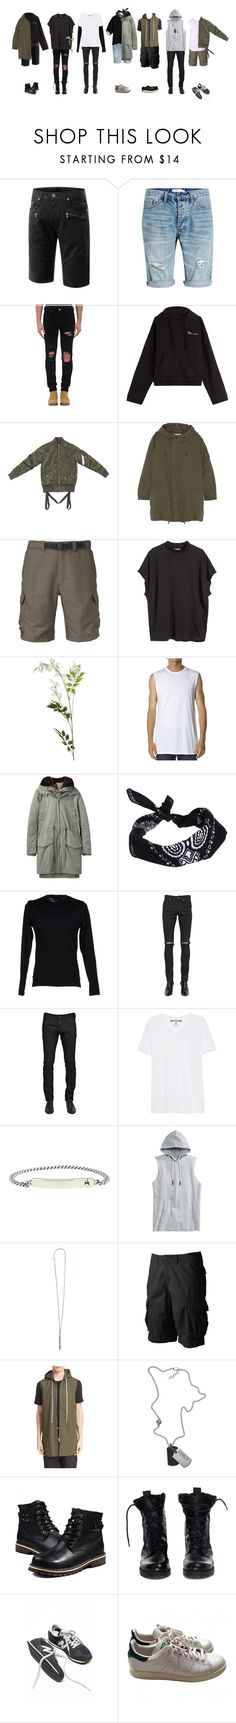 """""""i'm all in"""" by baobaei ❤ liked on Polyvore featuring Topman, AMIRI, Vetements, Yves Saint Laurent, The North Face, H&M, OKA, Zanerobe, Acne Studios and ASOS"""